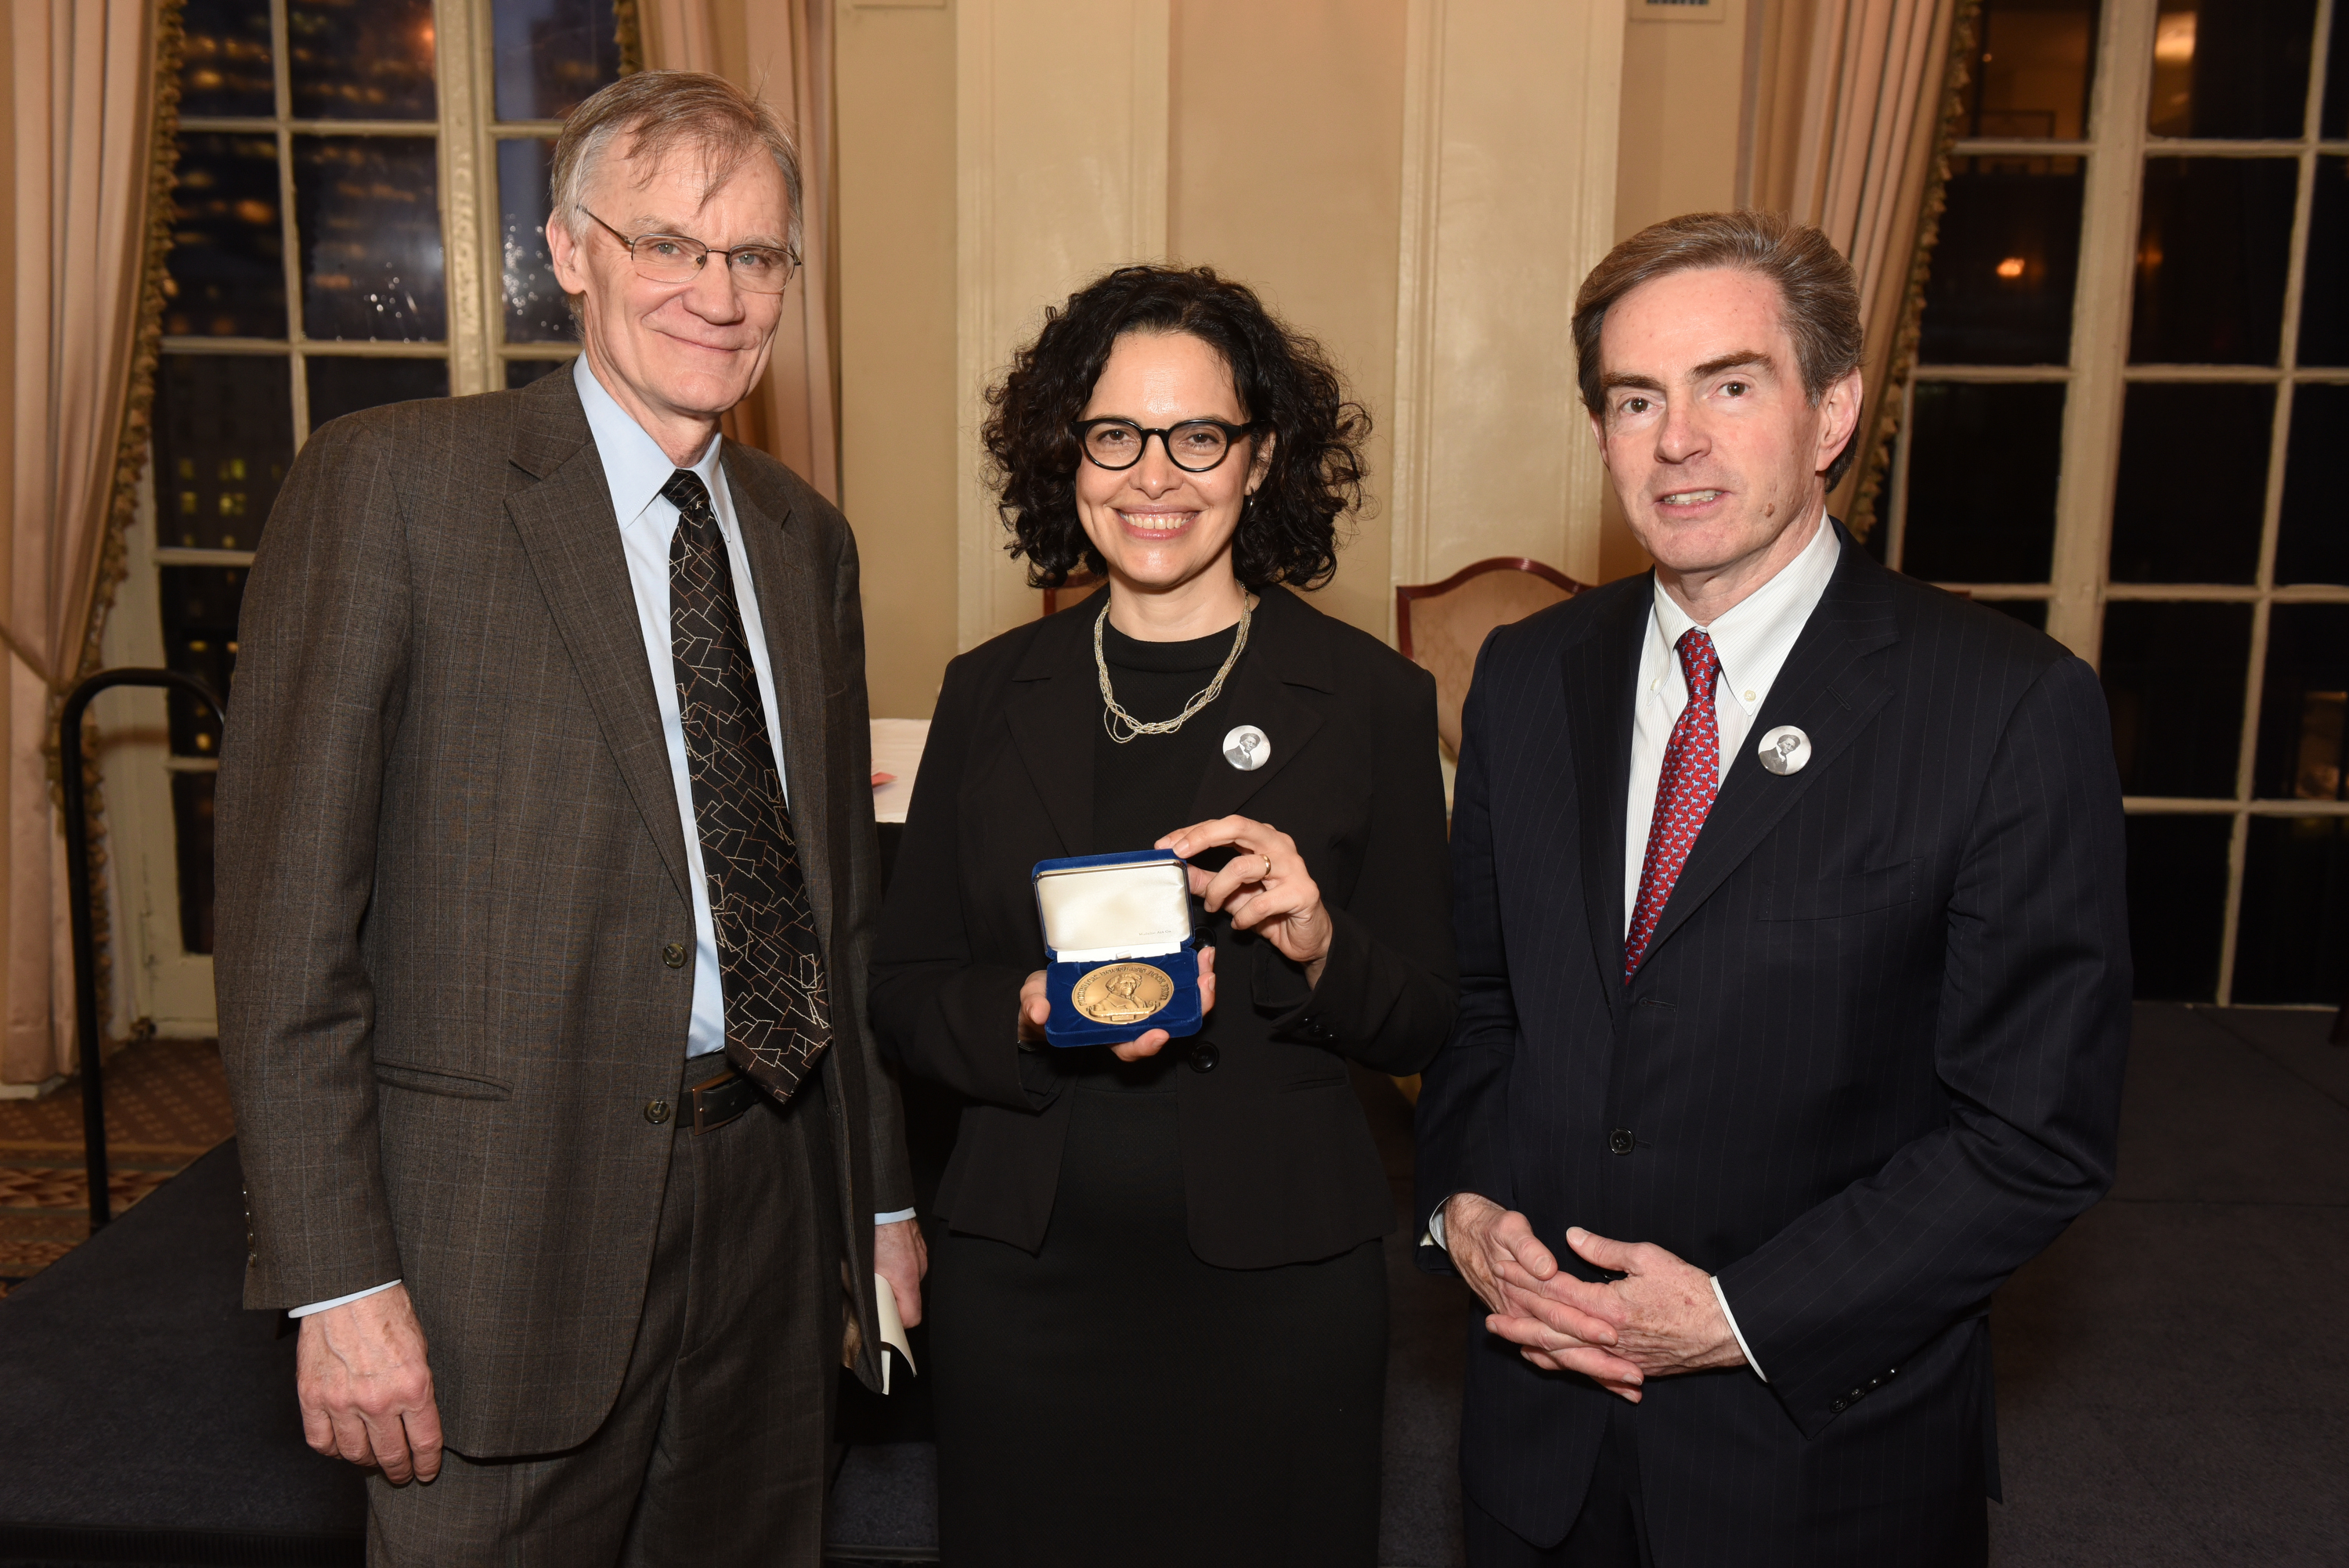 Ada Ferrer holds her award alongside Gilder Lehrman President James Basker and D